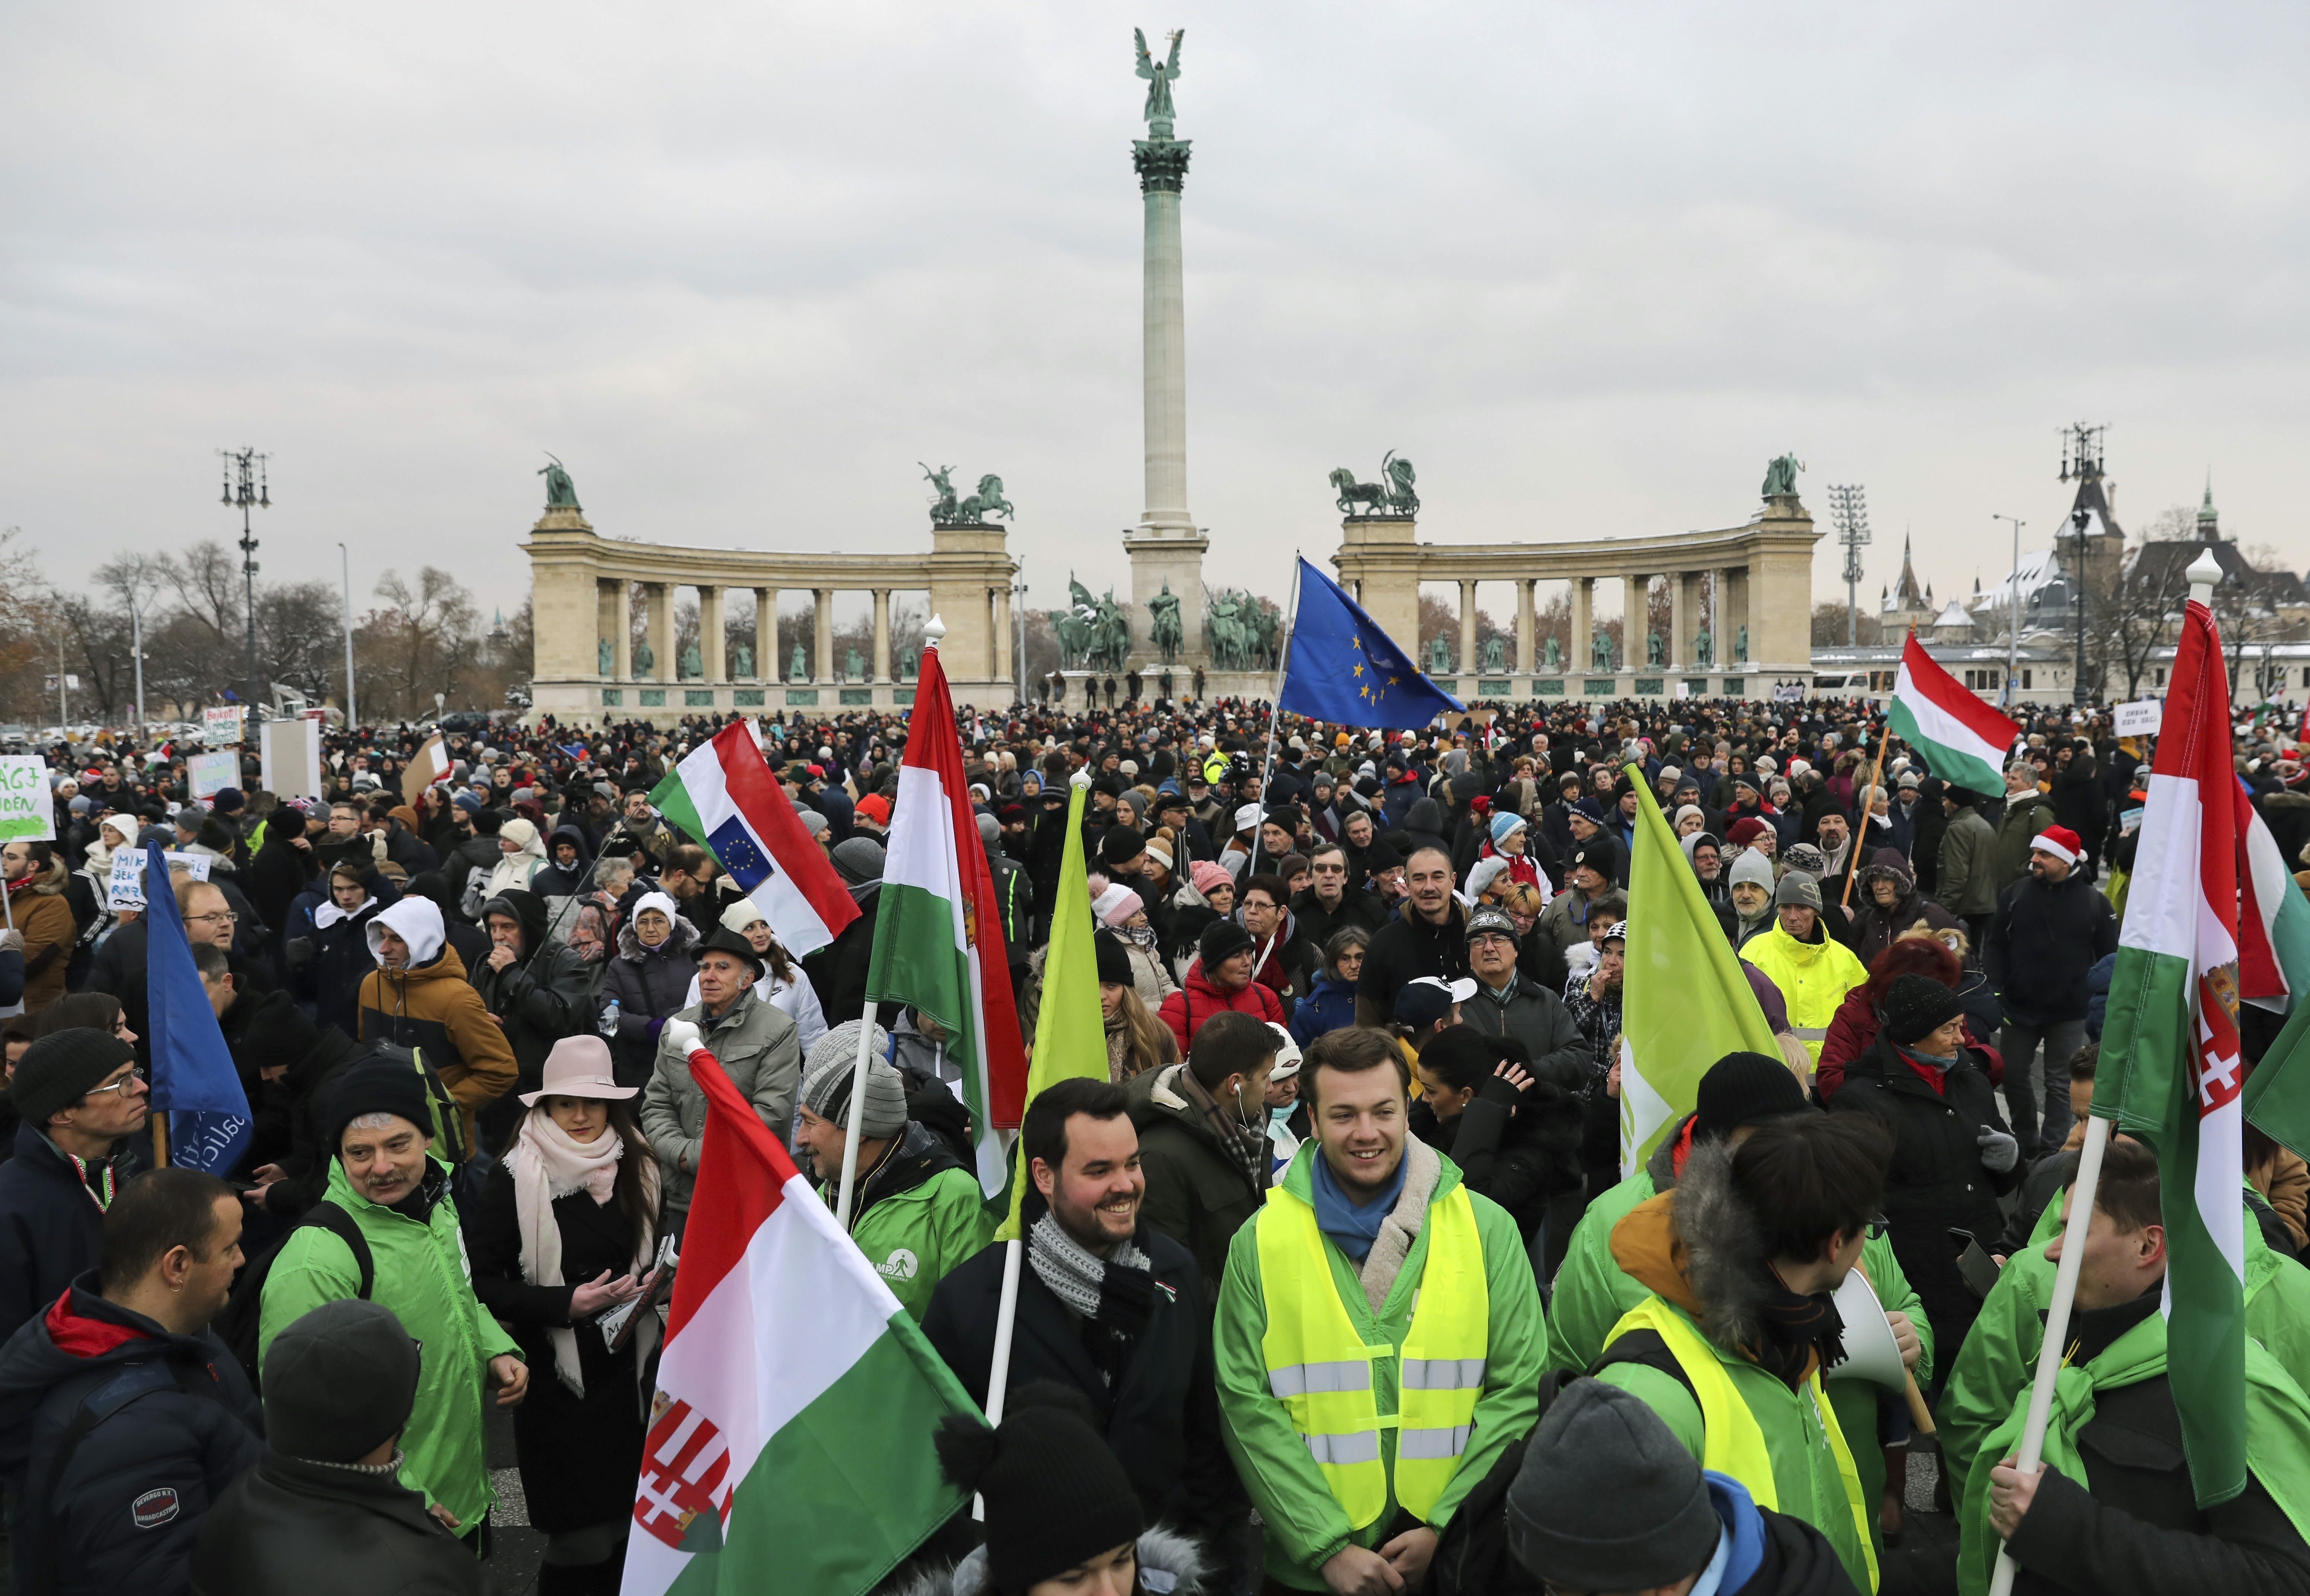 Participants of the anti-government demonstration under the title Merry Christmas, Mr. Prime Minister gather in Heroes' Square in Budapest, Hungary, Sunday, Dec. 16, 2018. (Balazs Mohai/MTI via AP)